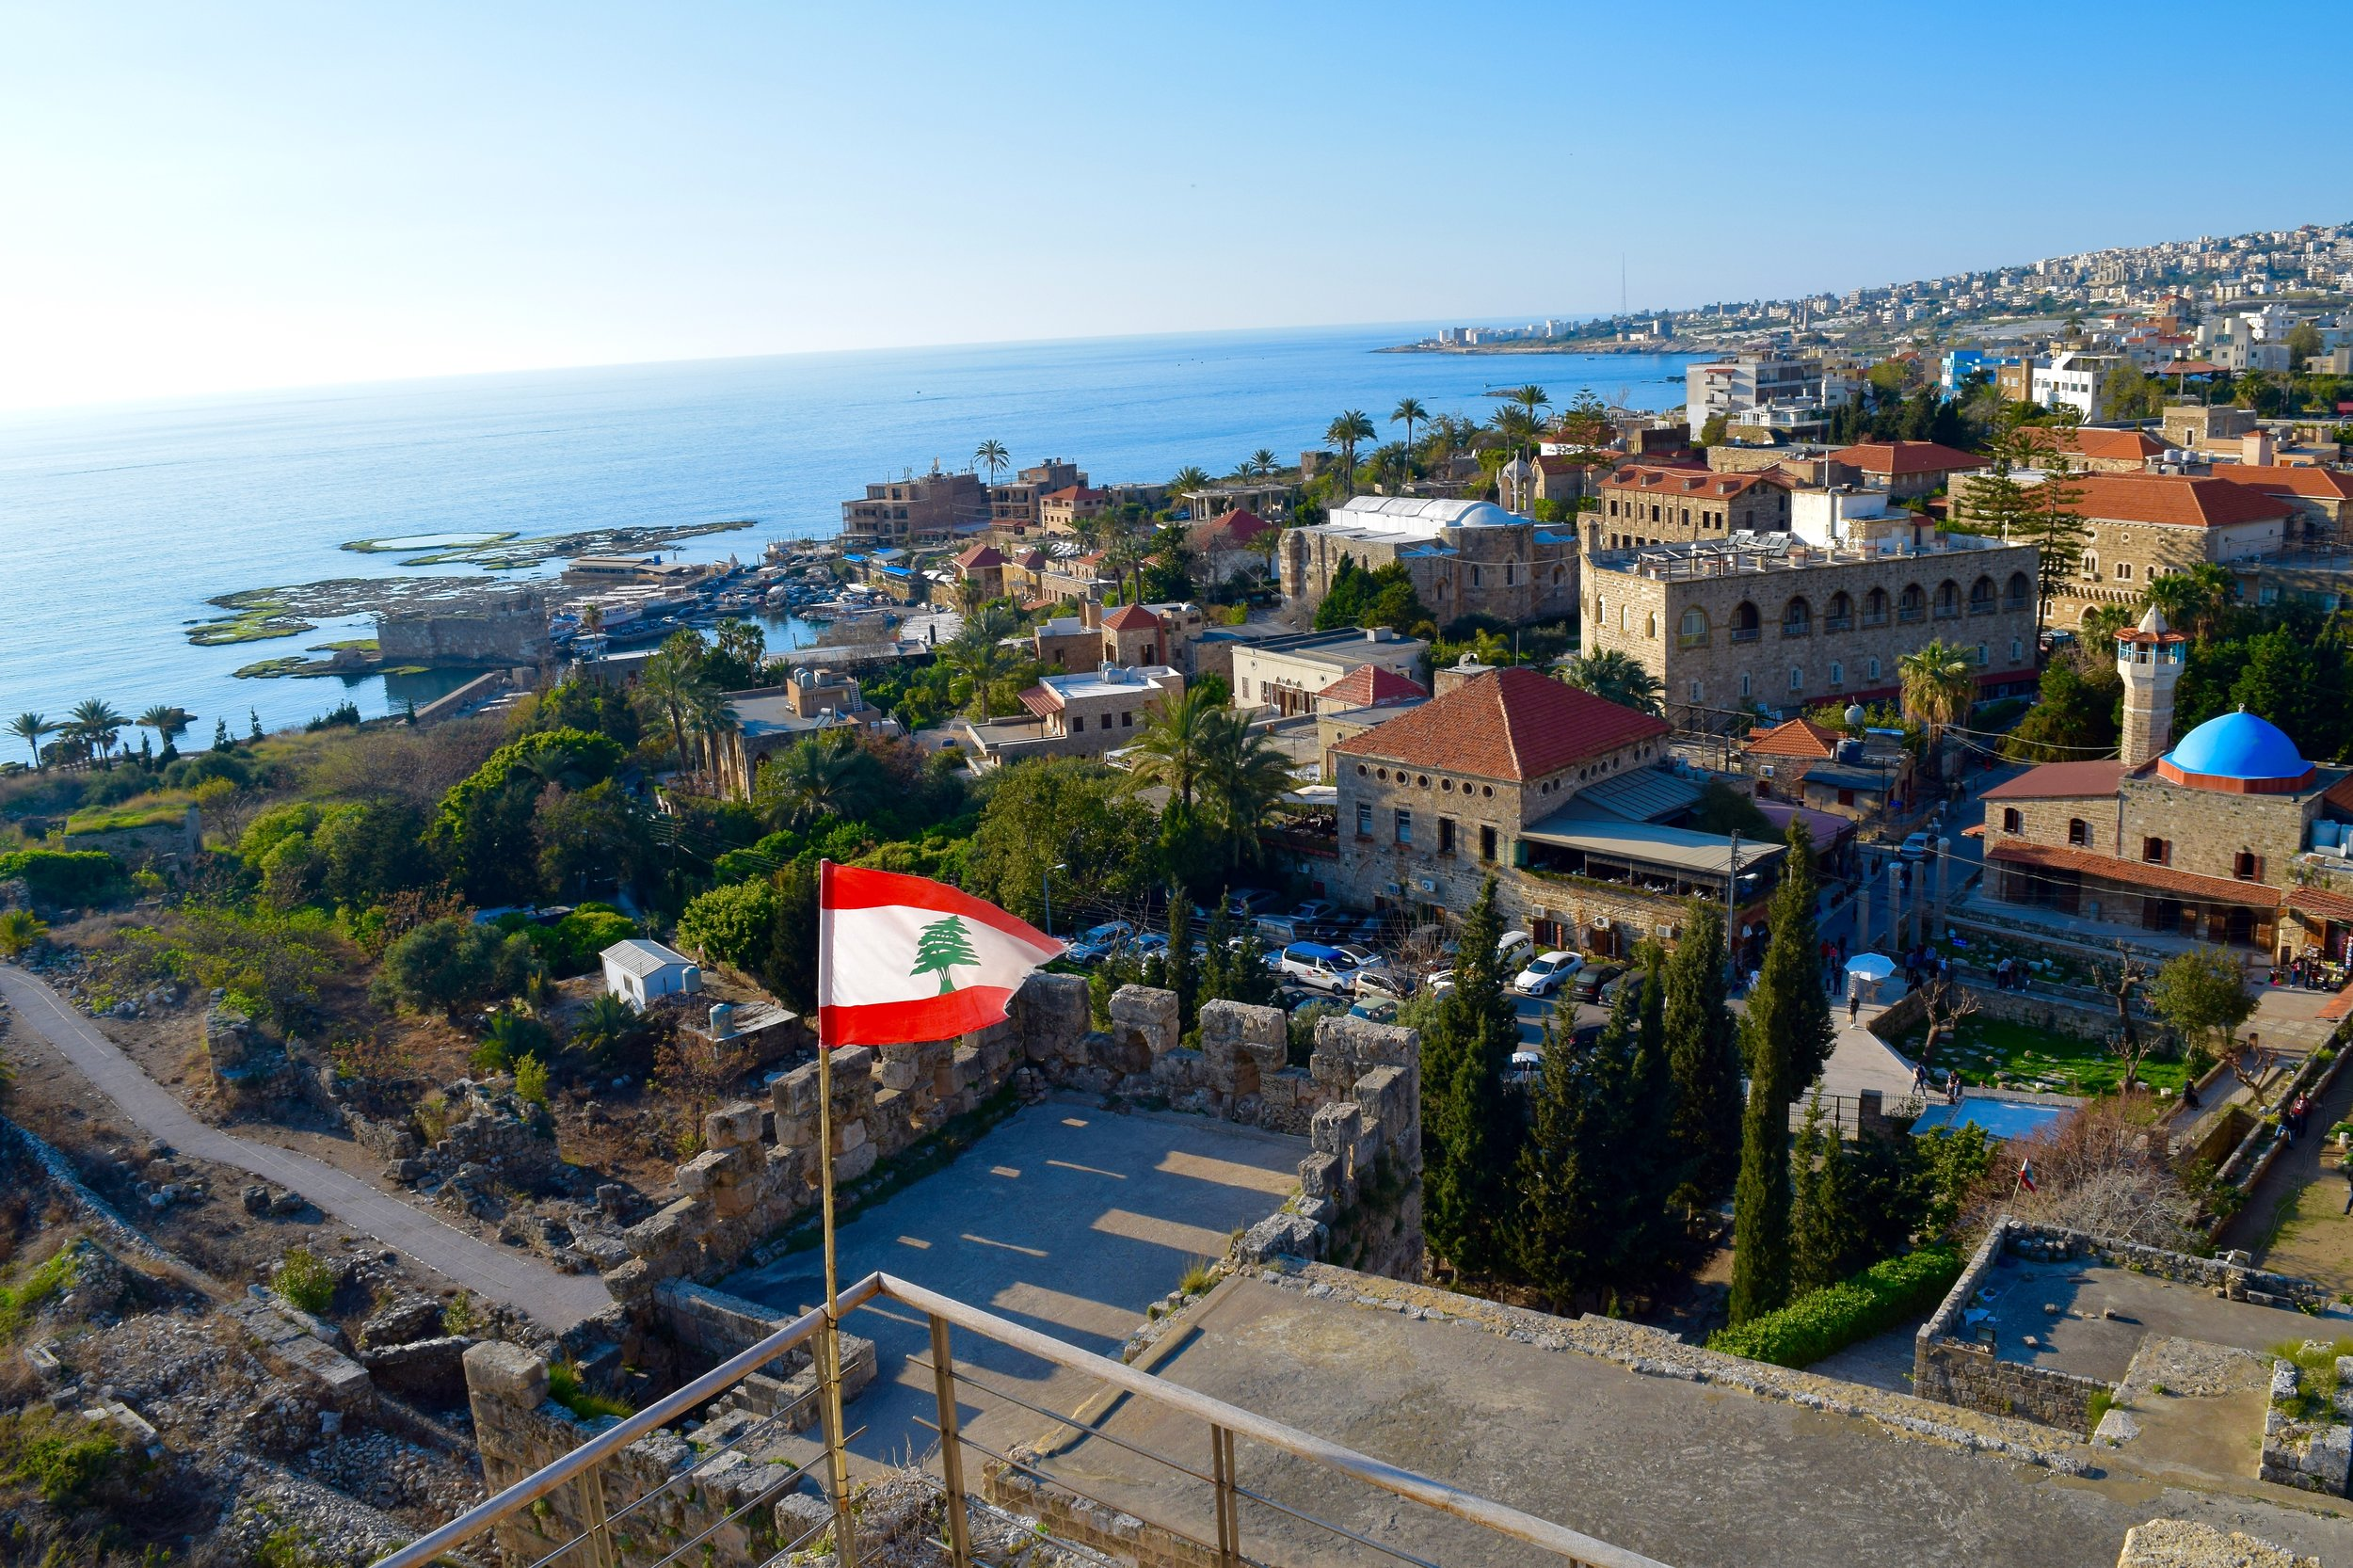 Views of Byblos from the castle